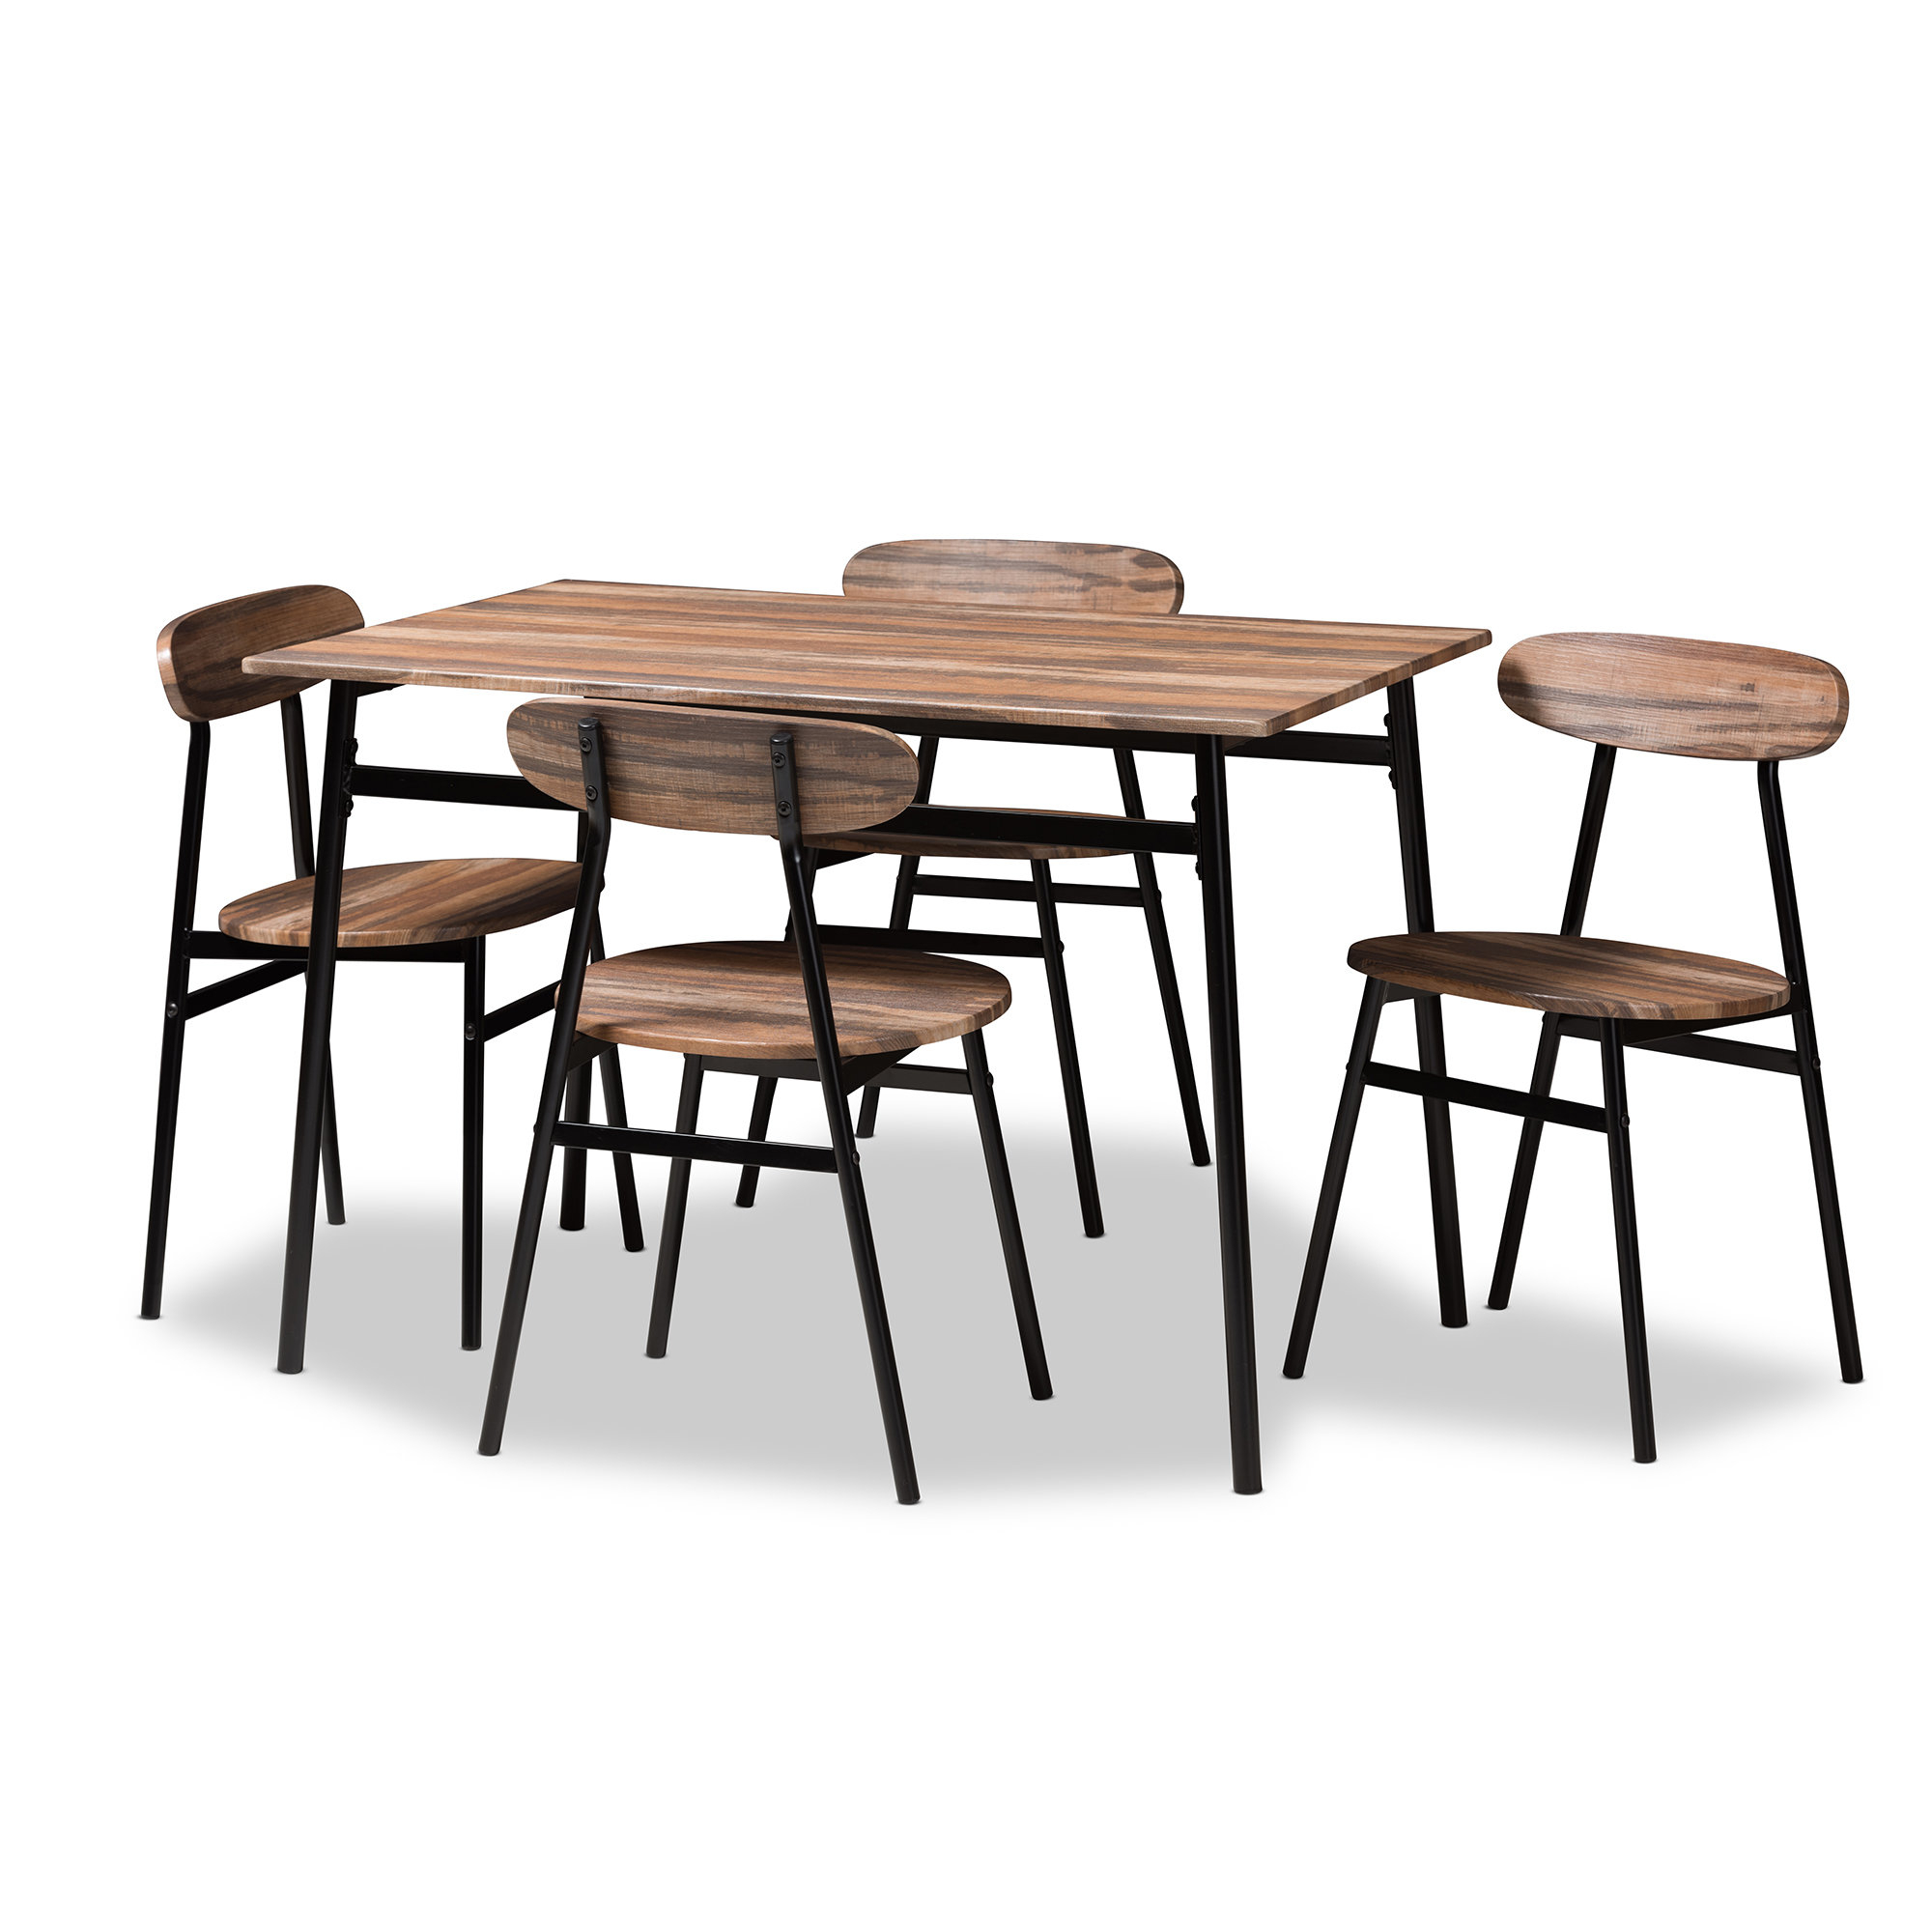 Casiano 5 Piece Dining Sets Inside Most Current Union Rustic Telauges 5 Piece Dining Set & Reviews (View 18 of 20)